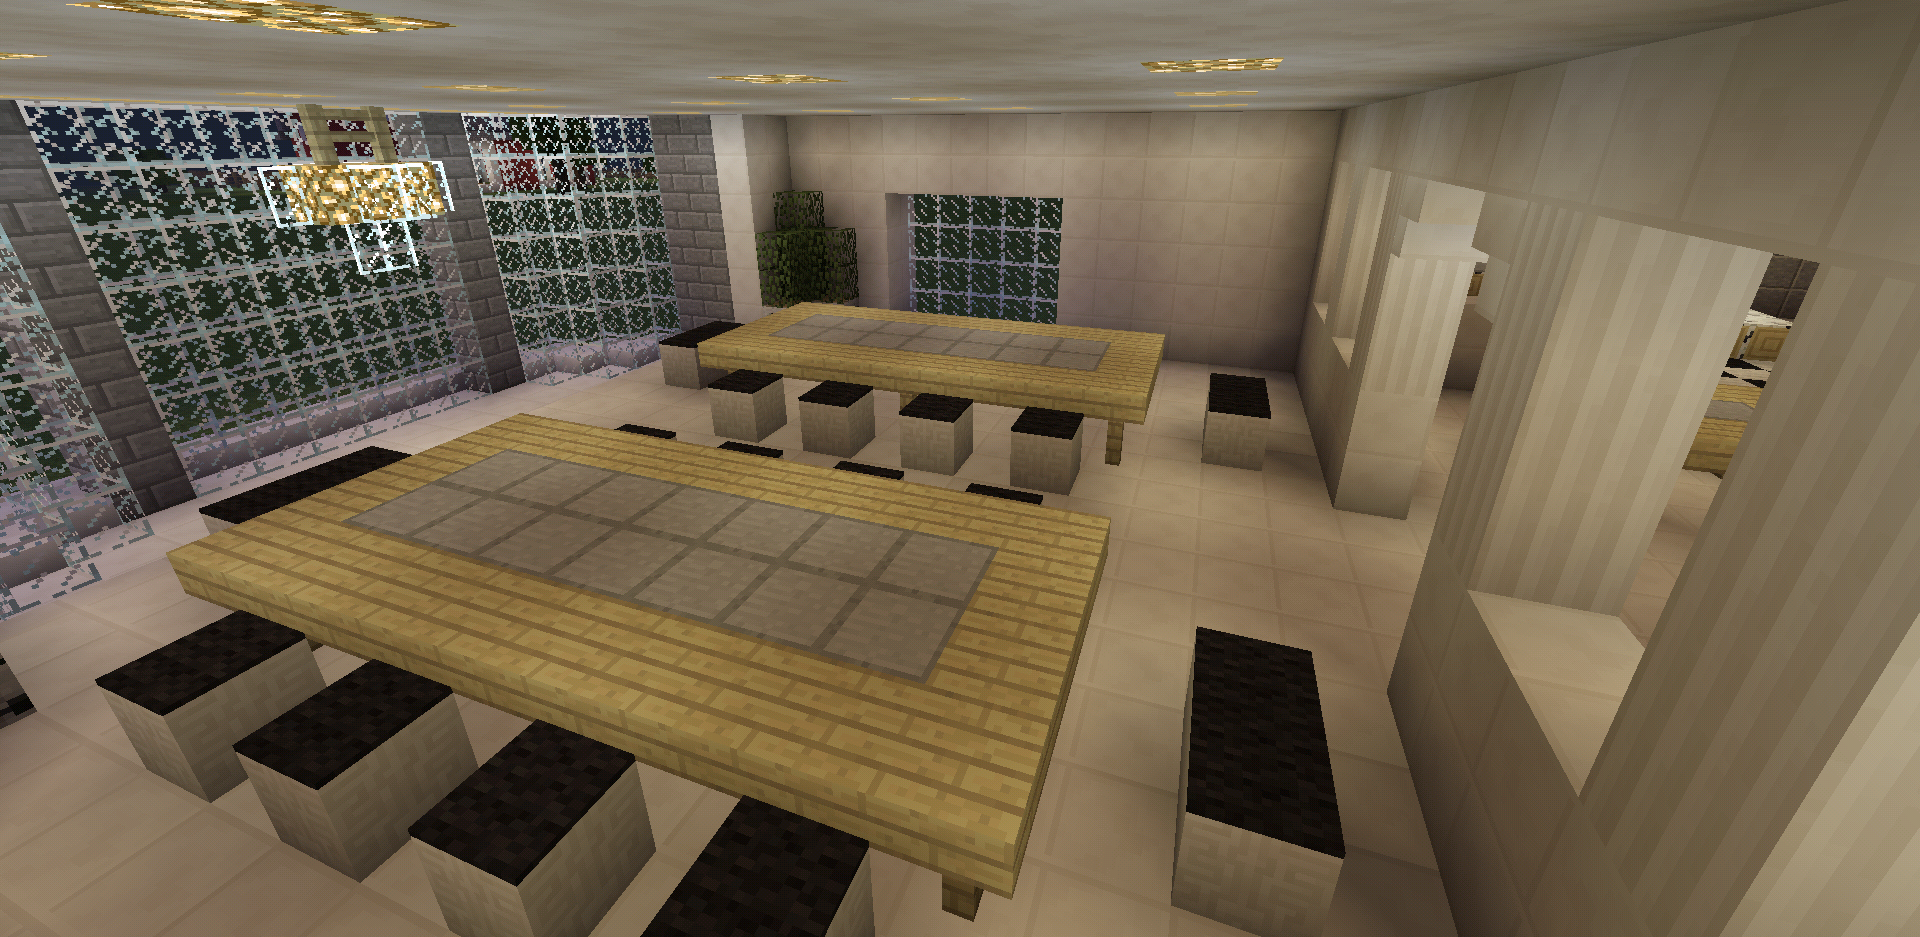 Minecraft Castle Dining Table - Dining room ideas